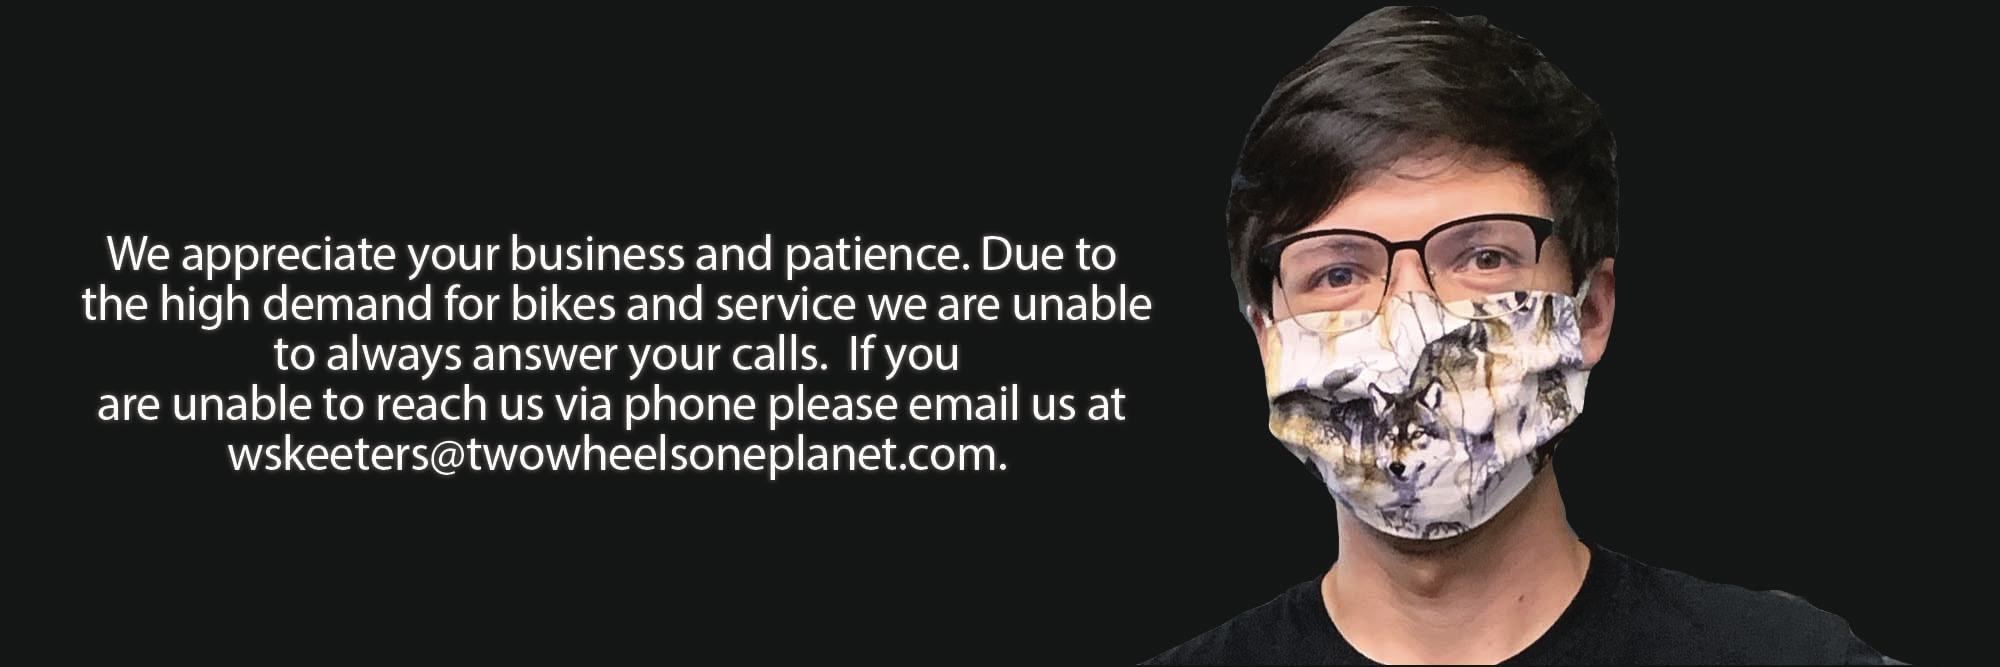 Due to a high volume of calls, please email us if you need assistance.